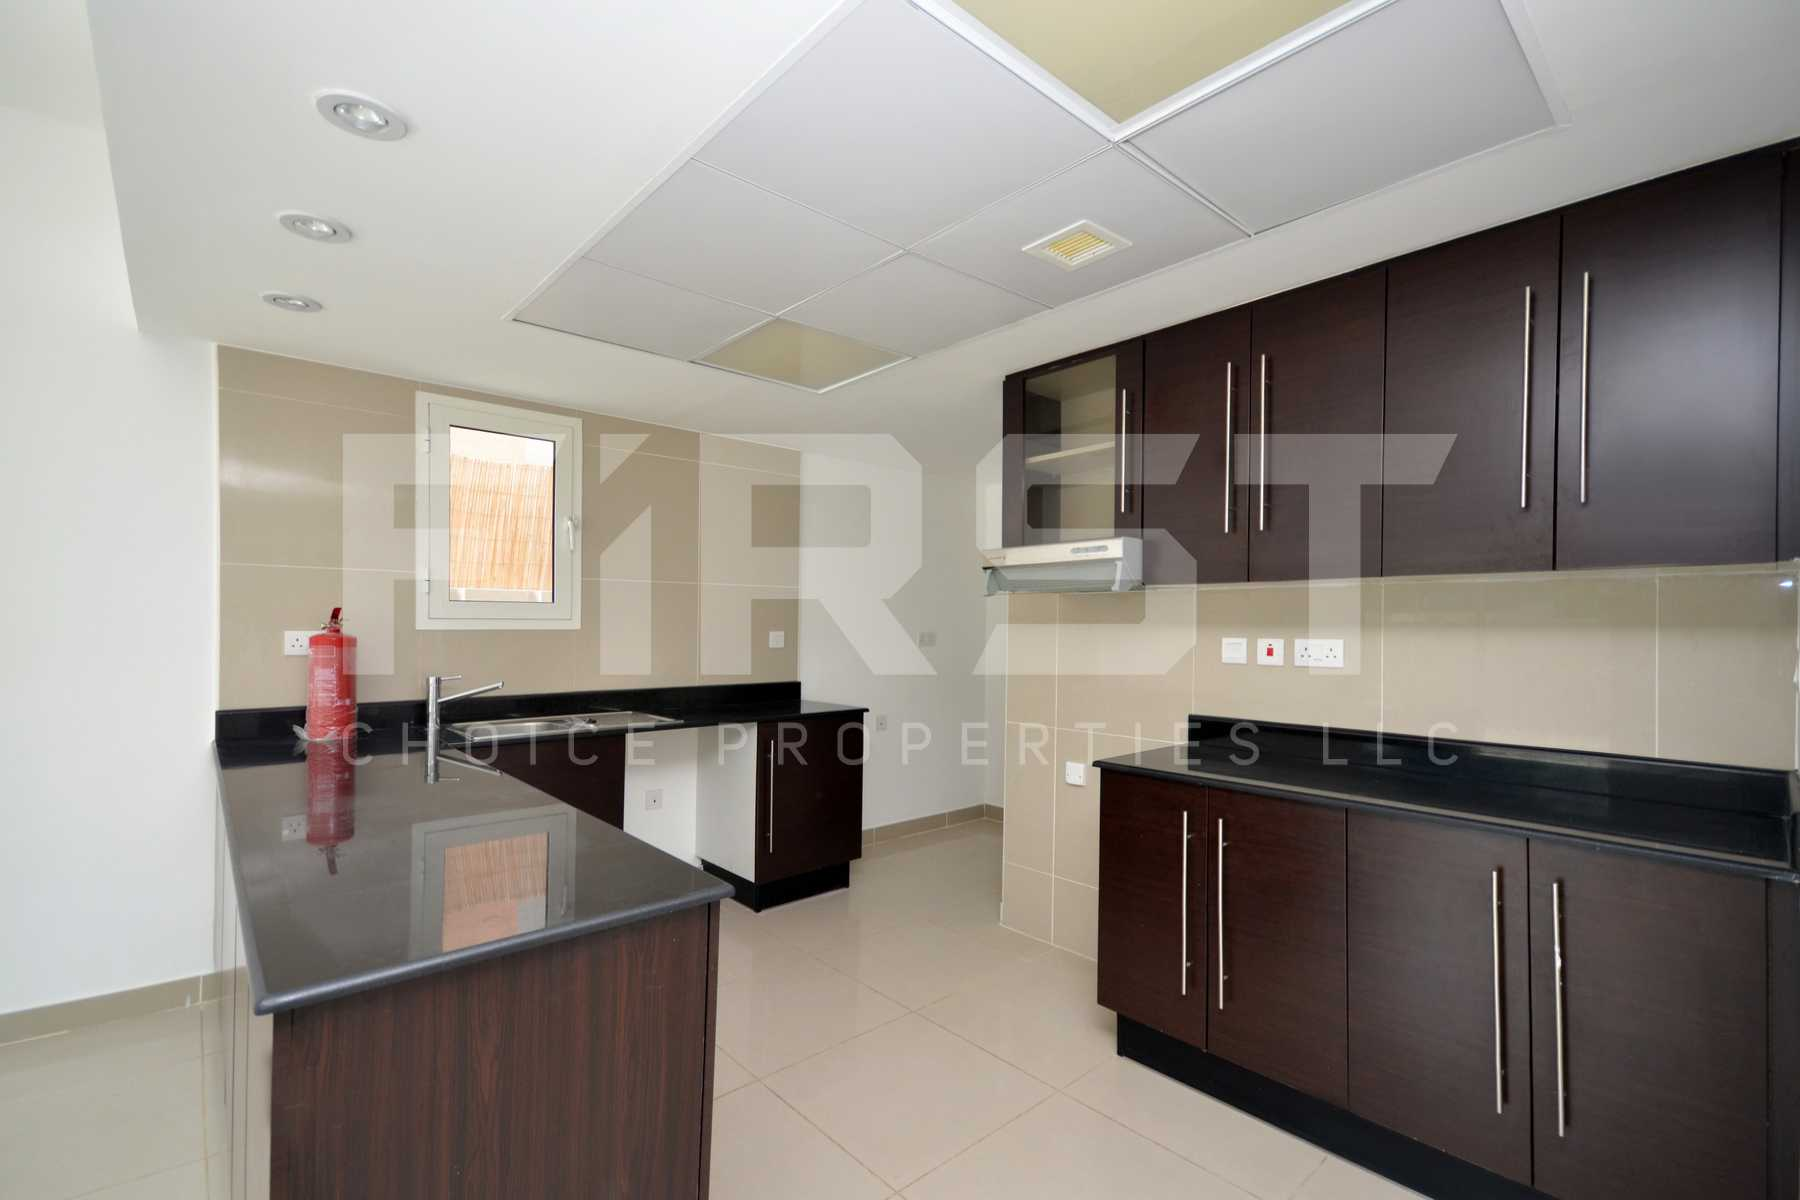 Internal Photo of 4 Bedroom Villa in Al Reef Villas Al Reef Abu Dhabi UAE 265.5 sq.m 2858 sq.ft (7).jpg